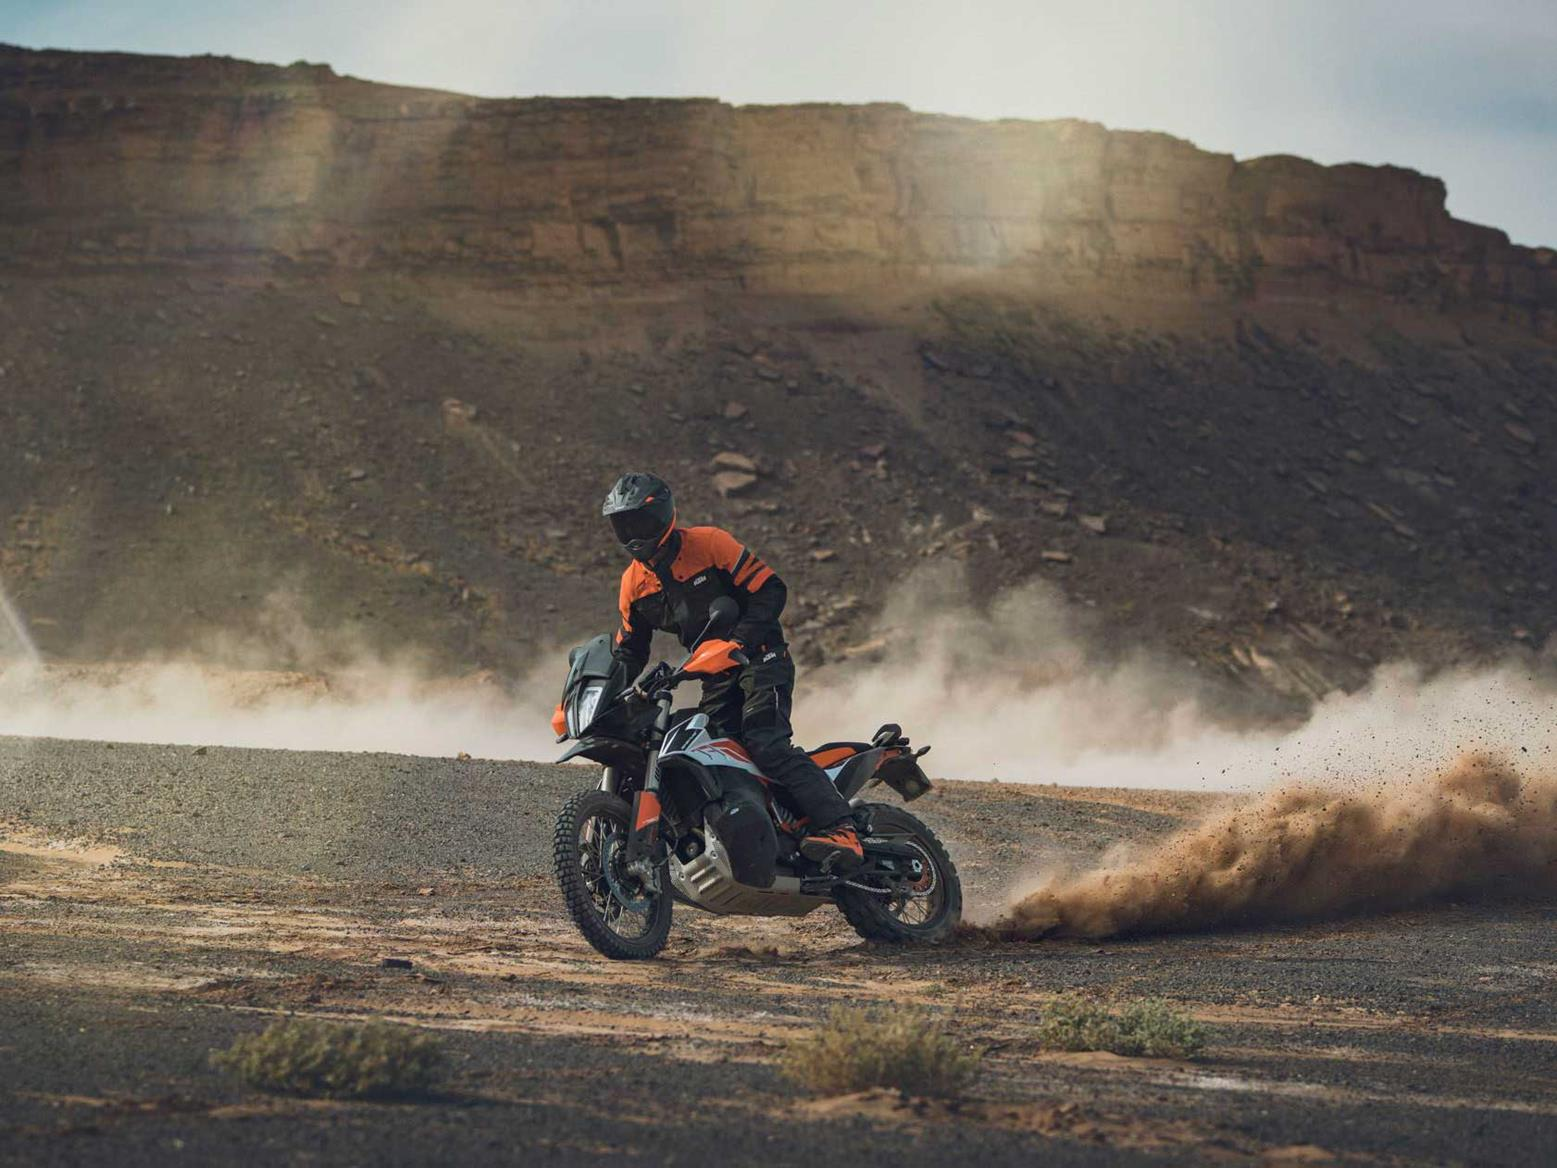 The KTM 790 Adventure offers the best of both worlds - it's great on and off road